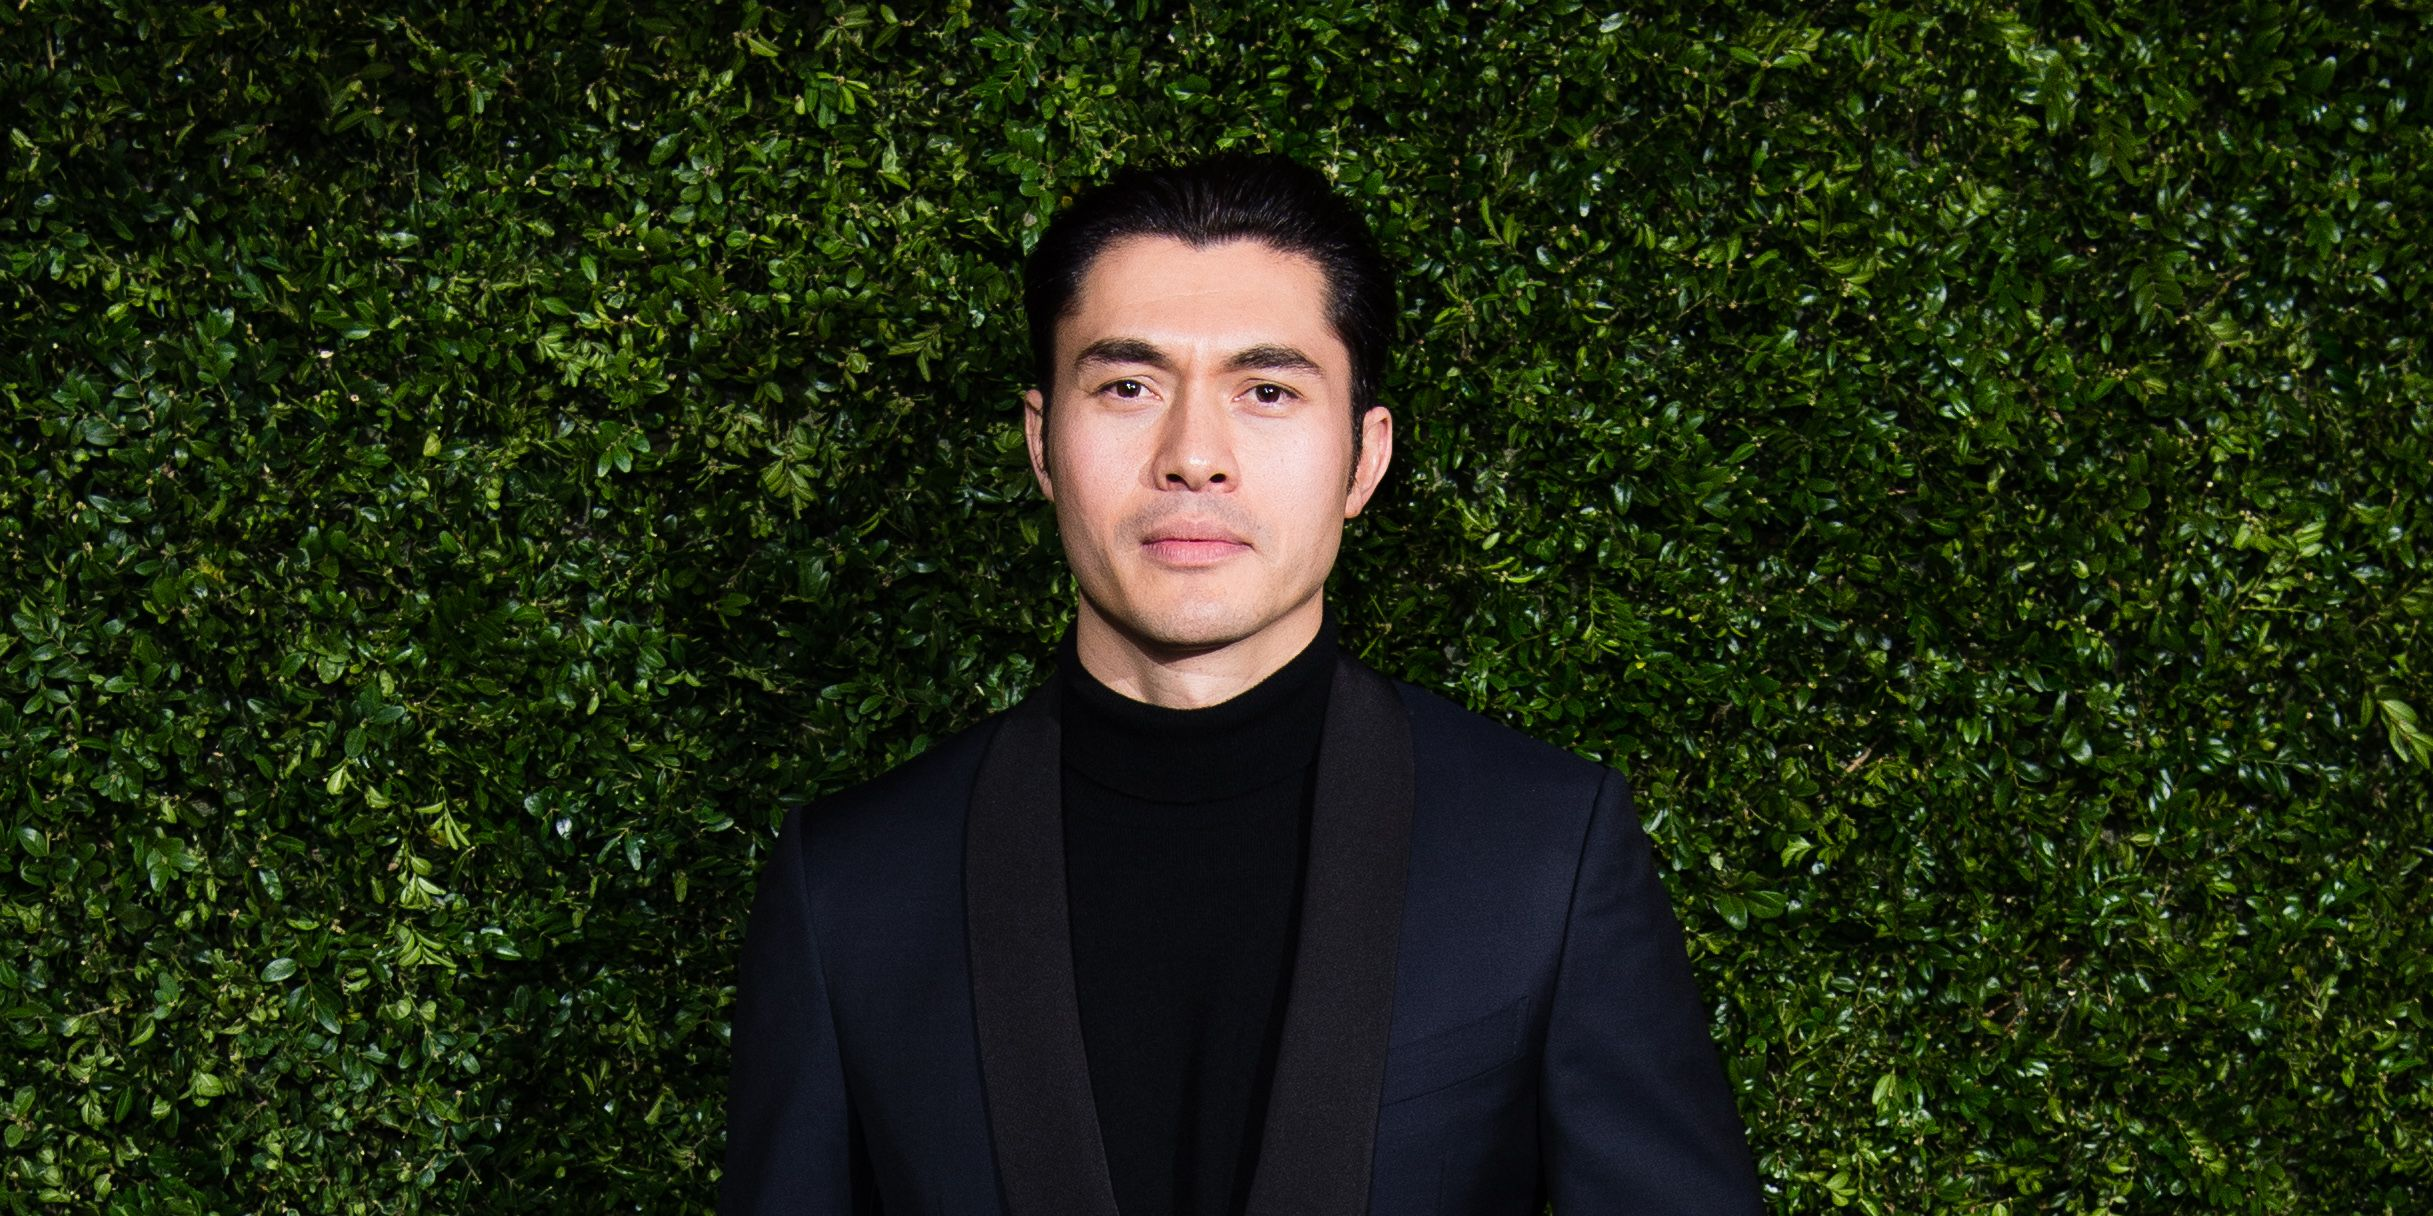 Henry Golding Pulled Off An Unlikely Bond Villain Audition At The BAFTAs After Party